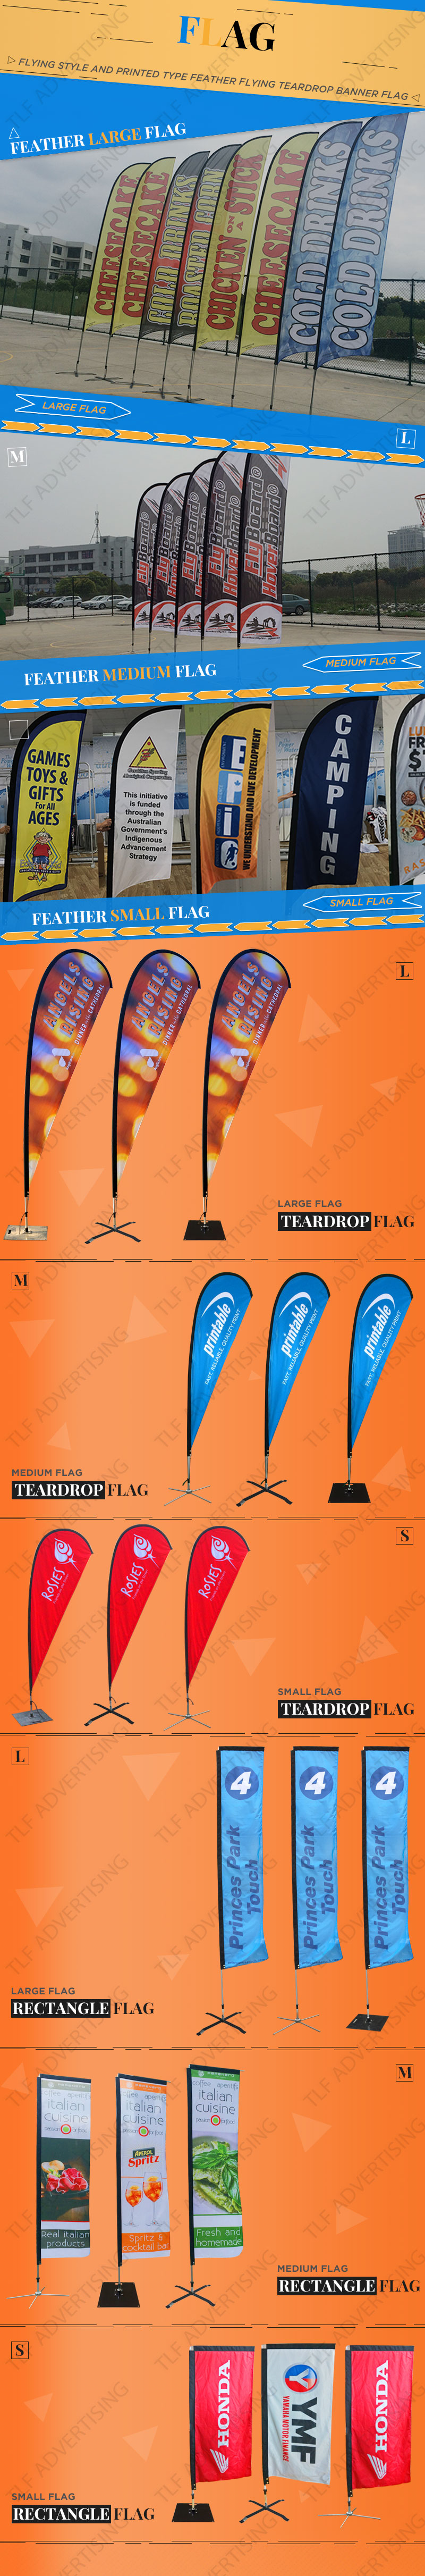 High quality customised dance floor stand feather flags